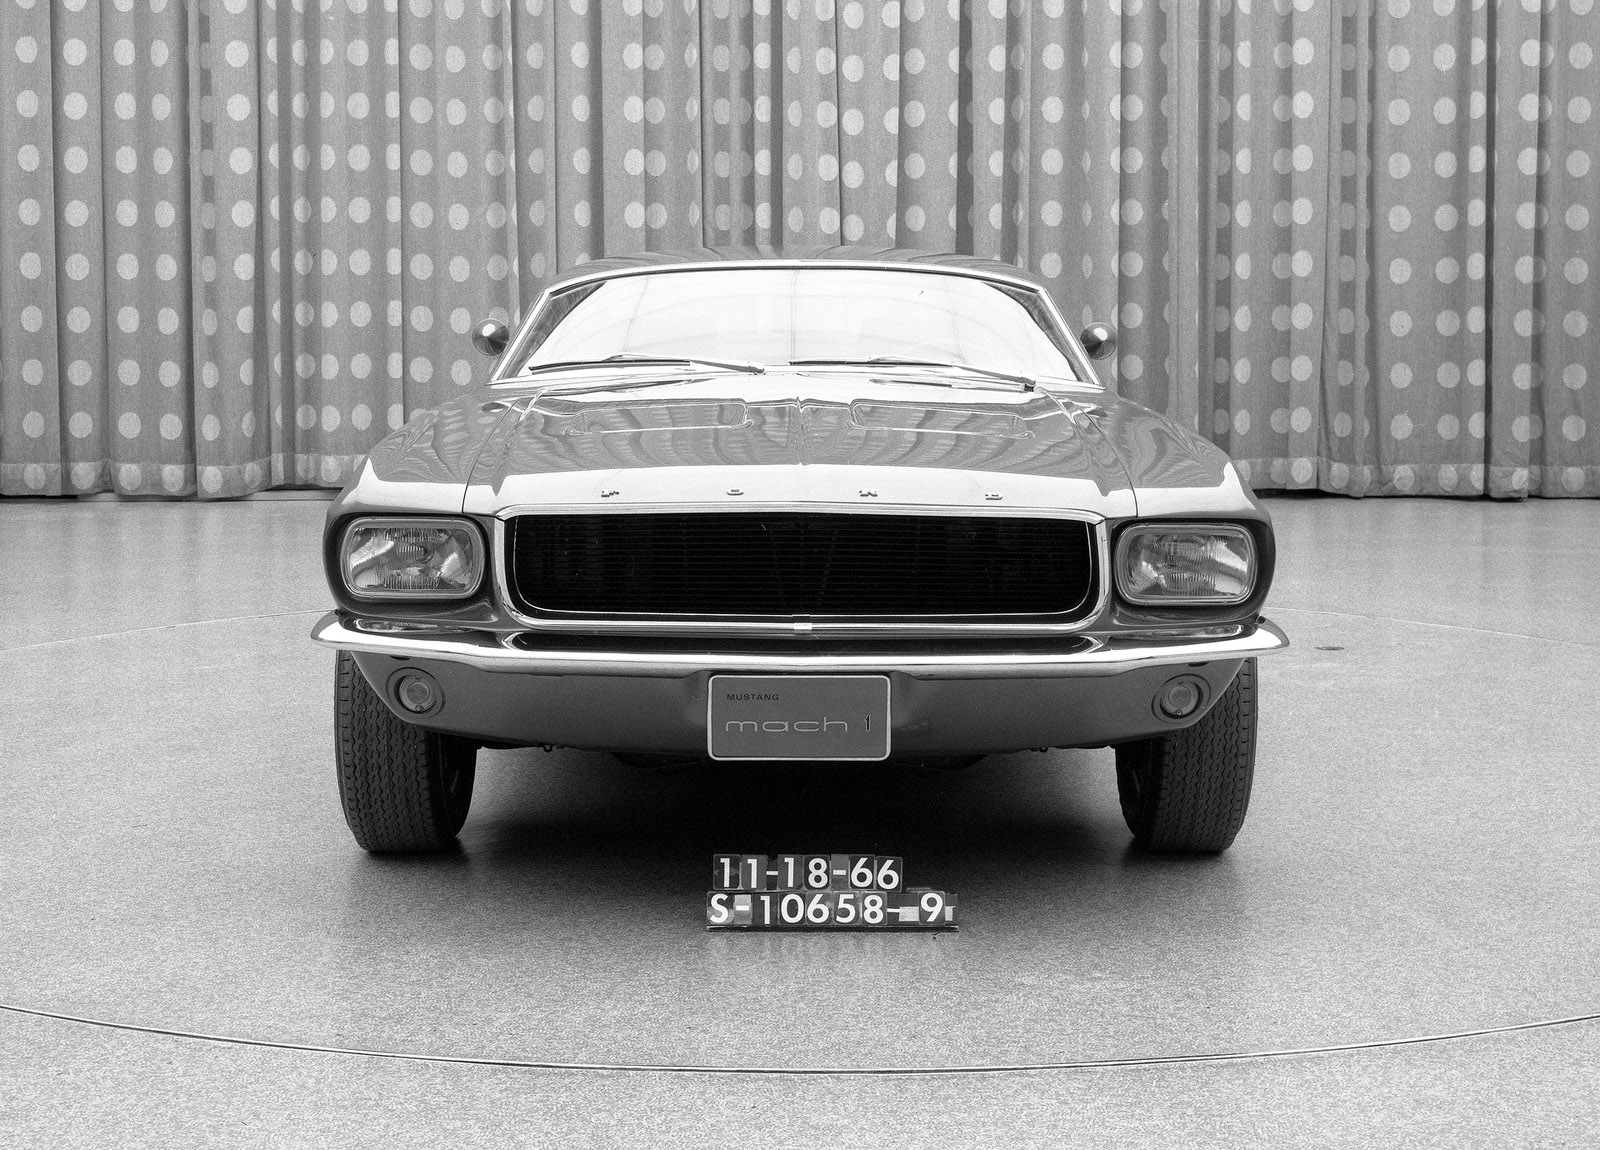 Ford Mustang Mach 1 Concept photo #7